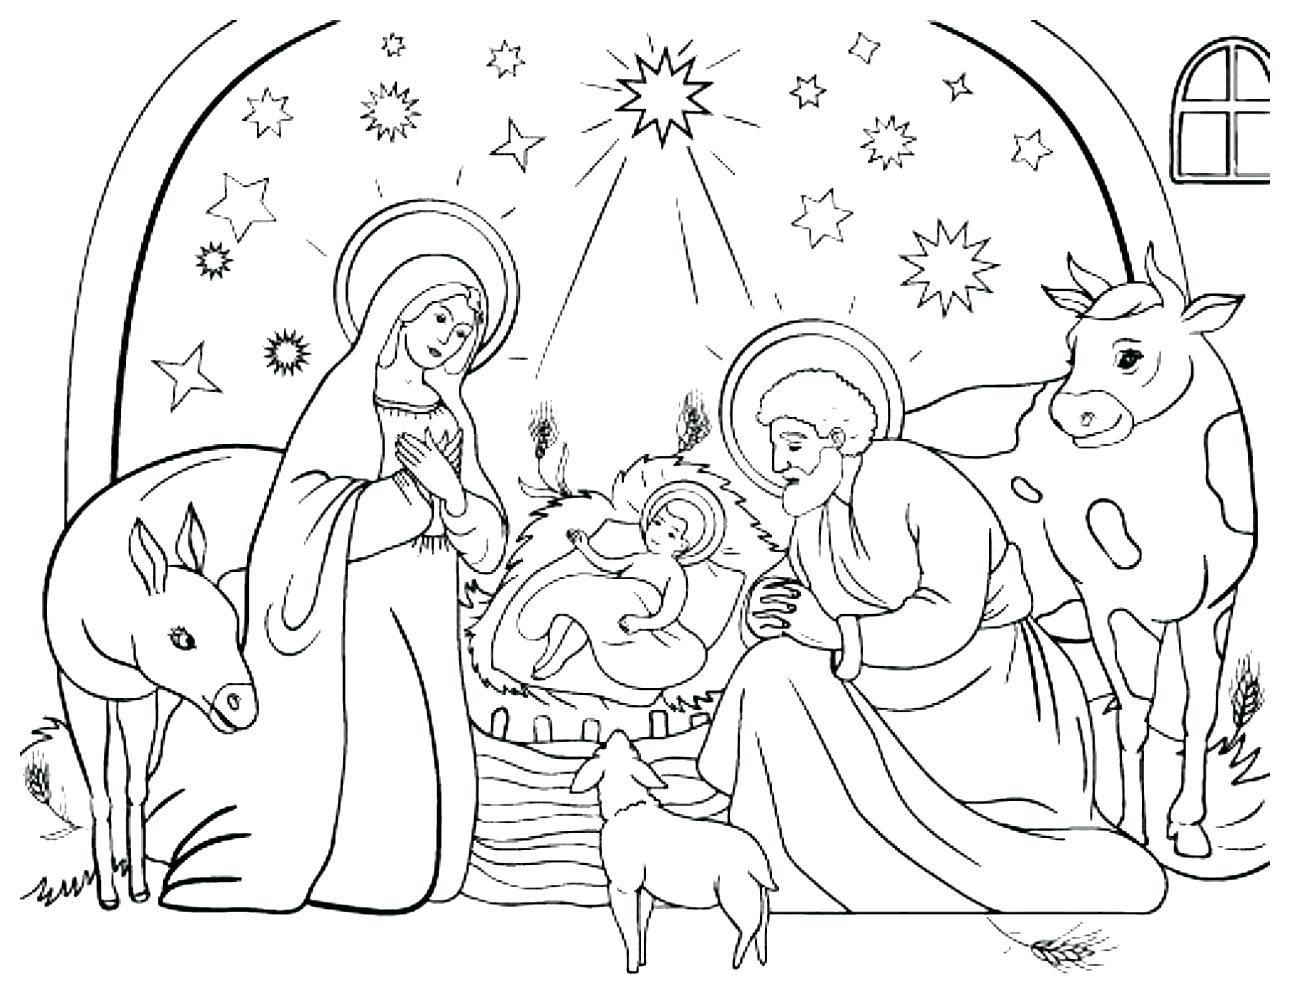 1290x1006 Christmas Colour In House Christmas Coloring Pages New Coloring